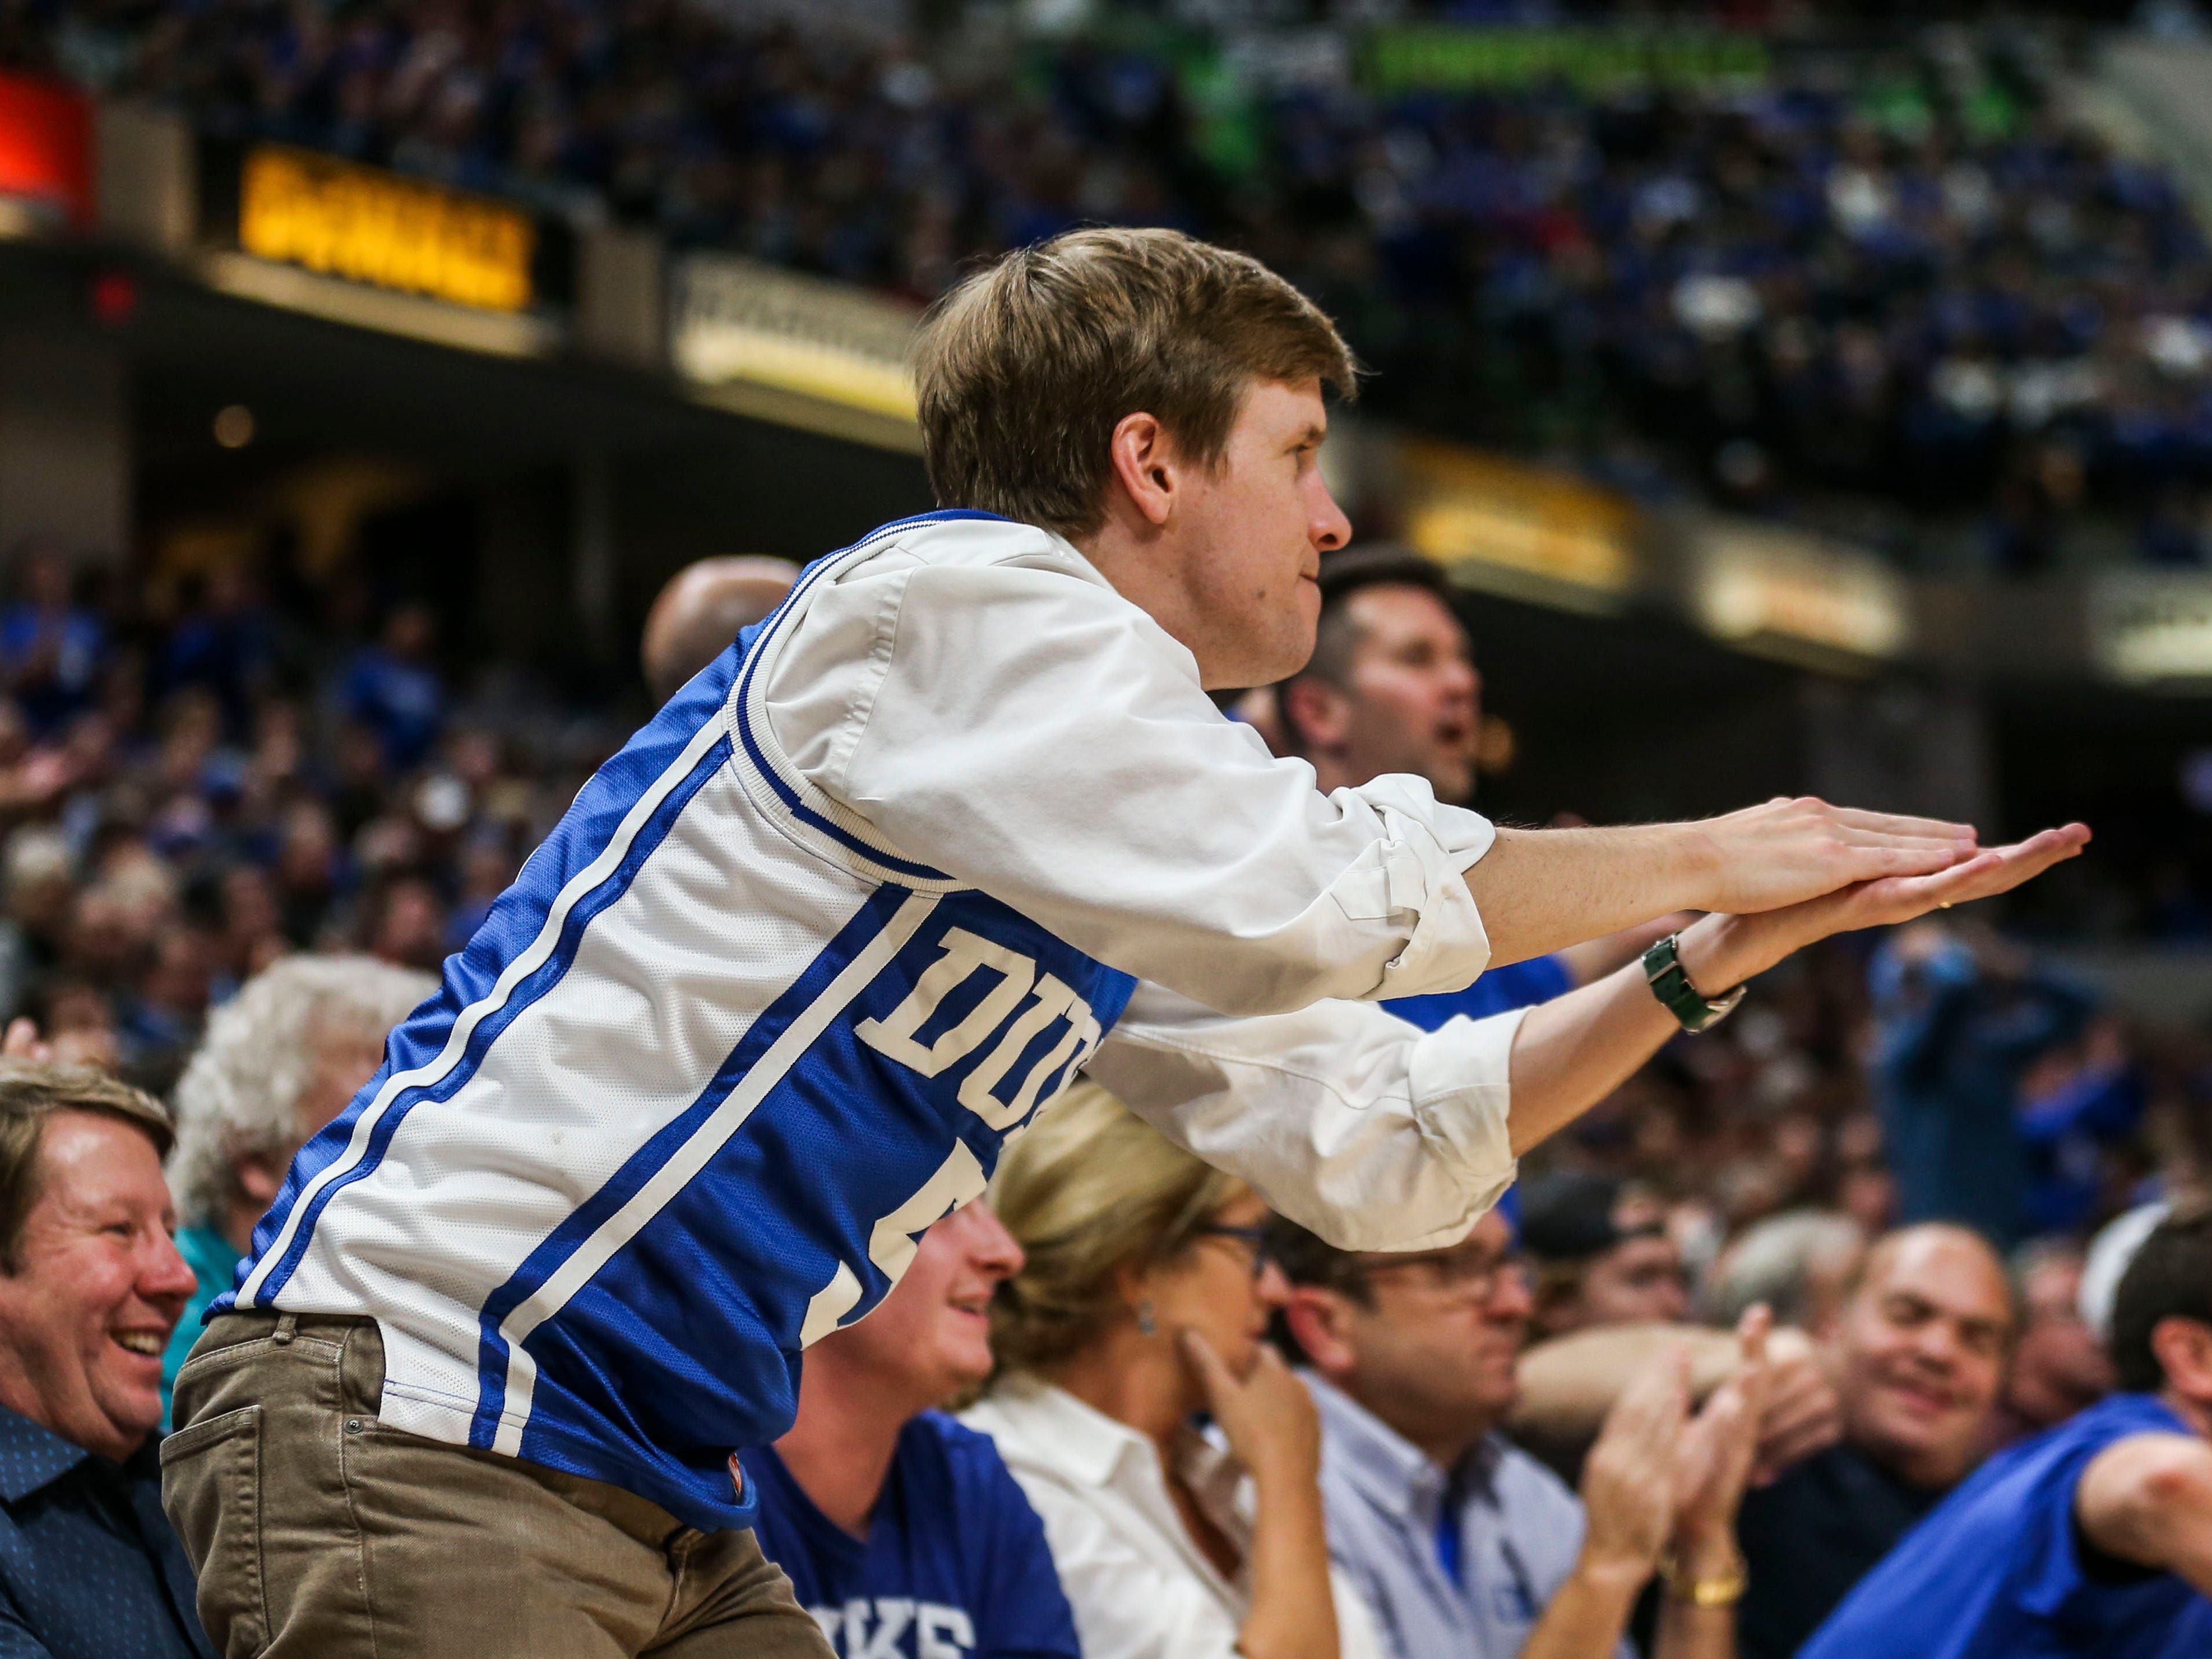 A Duke fan cheered as a Kentucky fan could only wonder what happened to the Wildcats as the Blue Devils crushed them 118-84 at the Champions Classic Nov. 6, 2018.